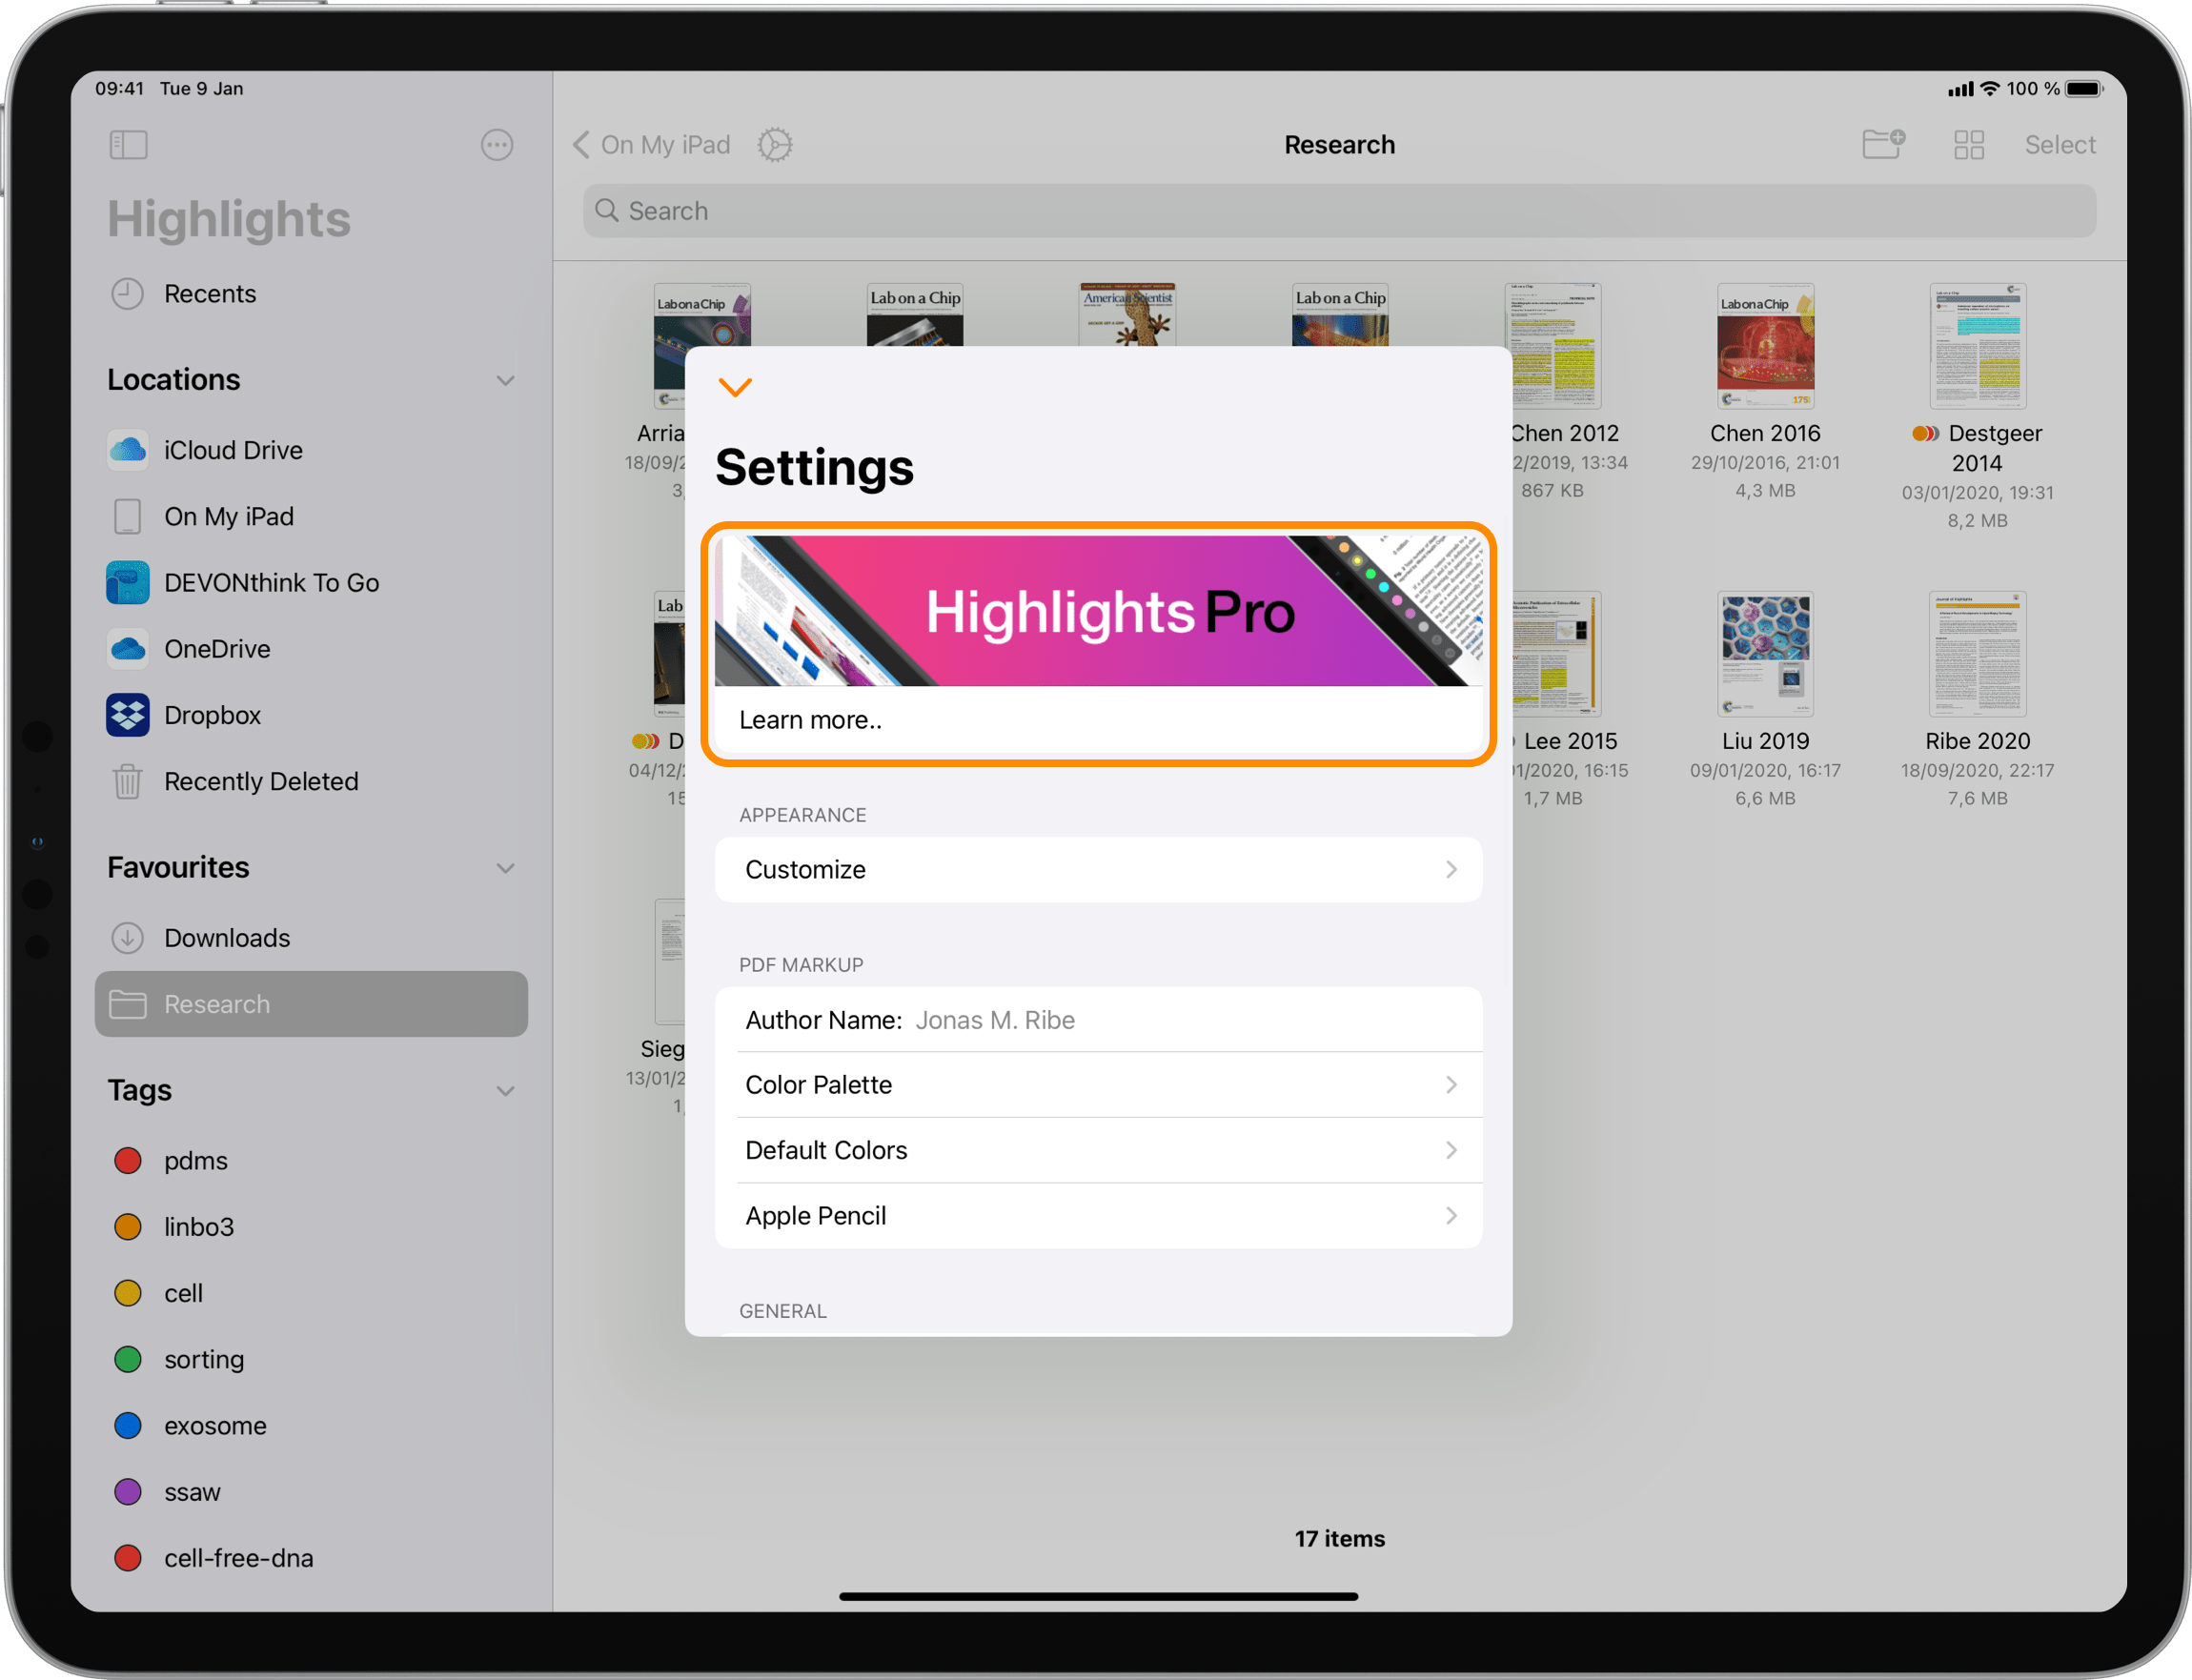 iPad displaying Highlights settings for unlocking Highlights Pro